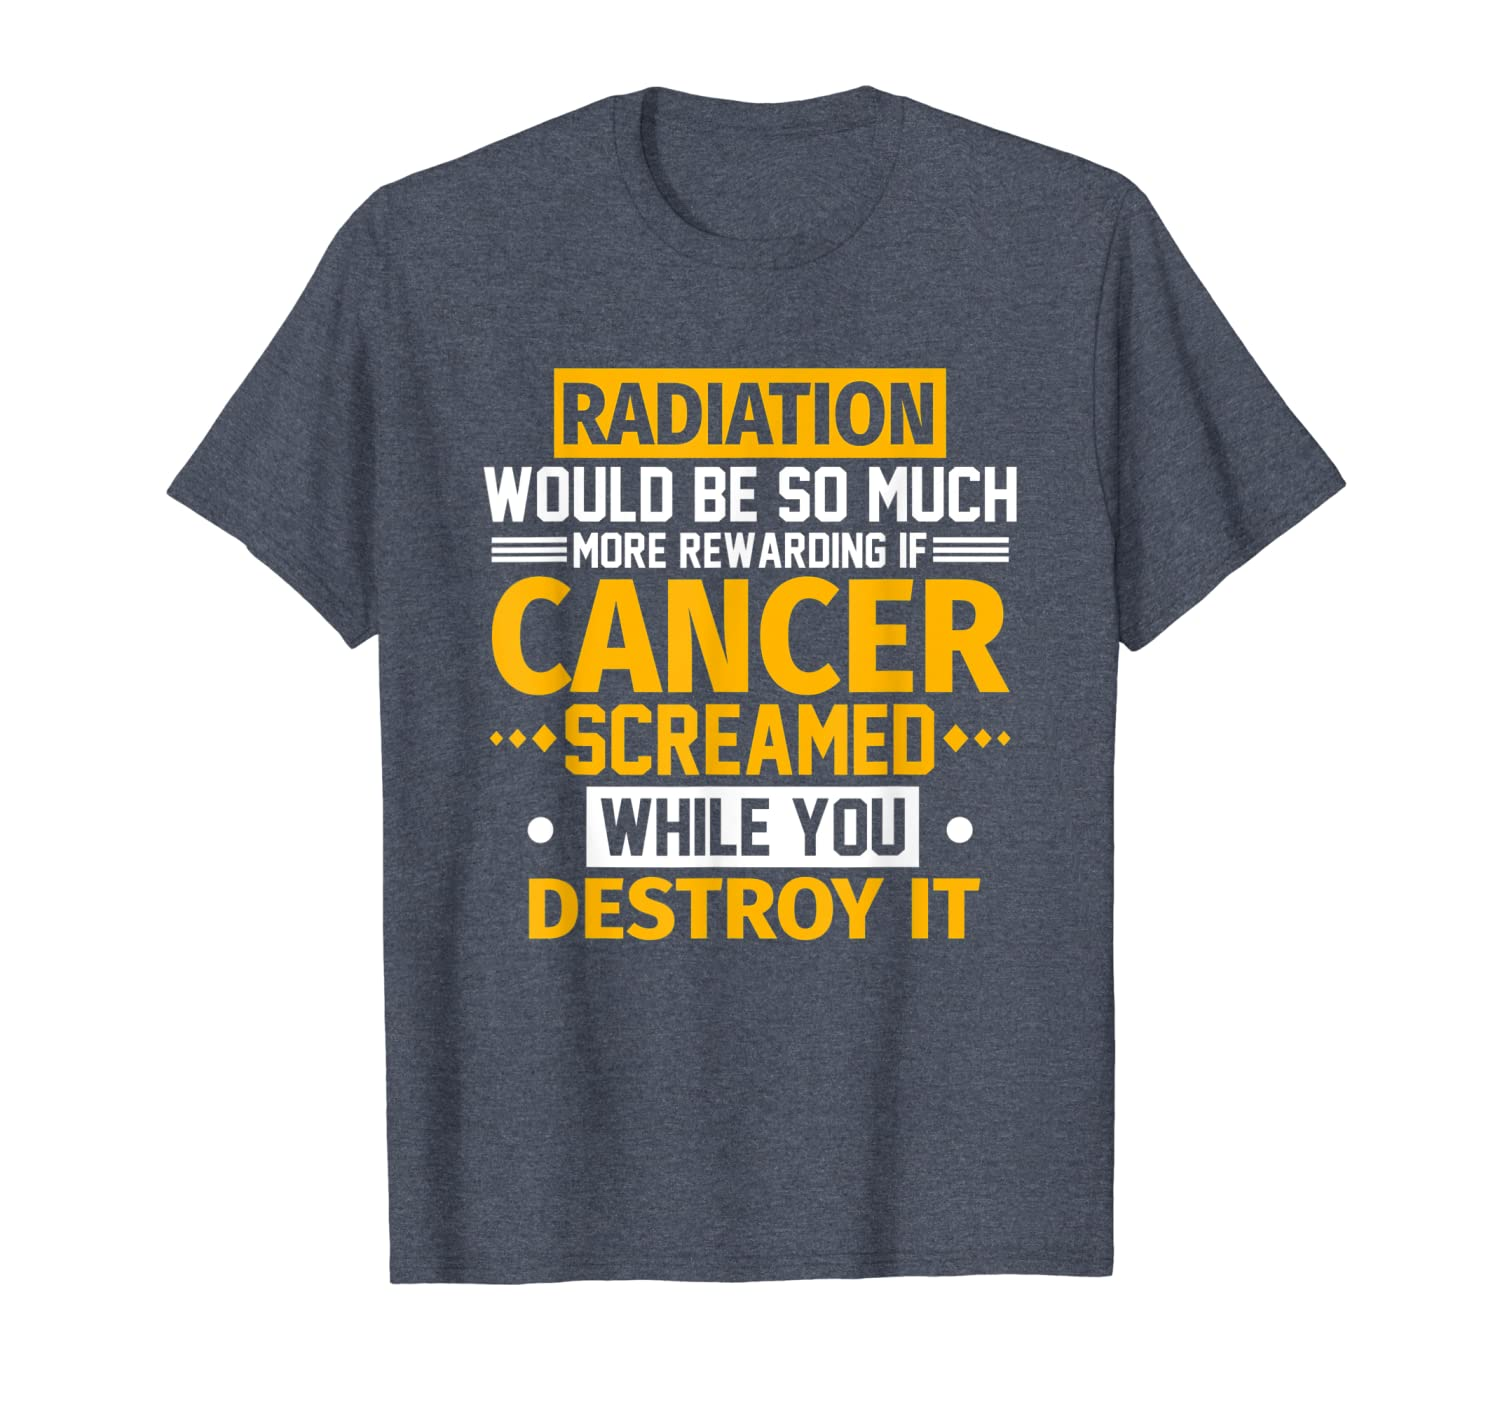 Radiation Would Be More Rewarding If Cancer Screamed T-Shirt